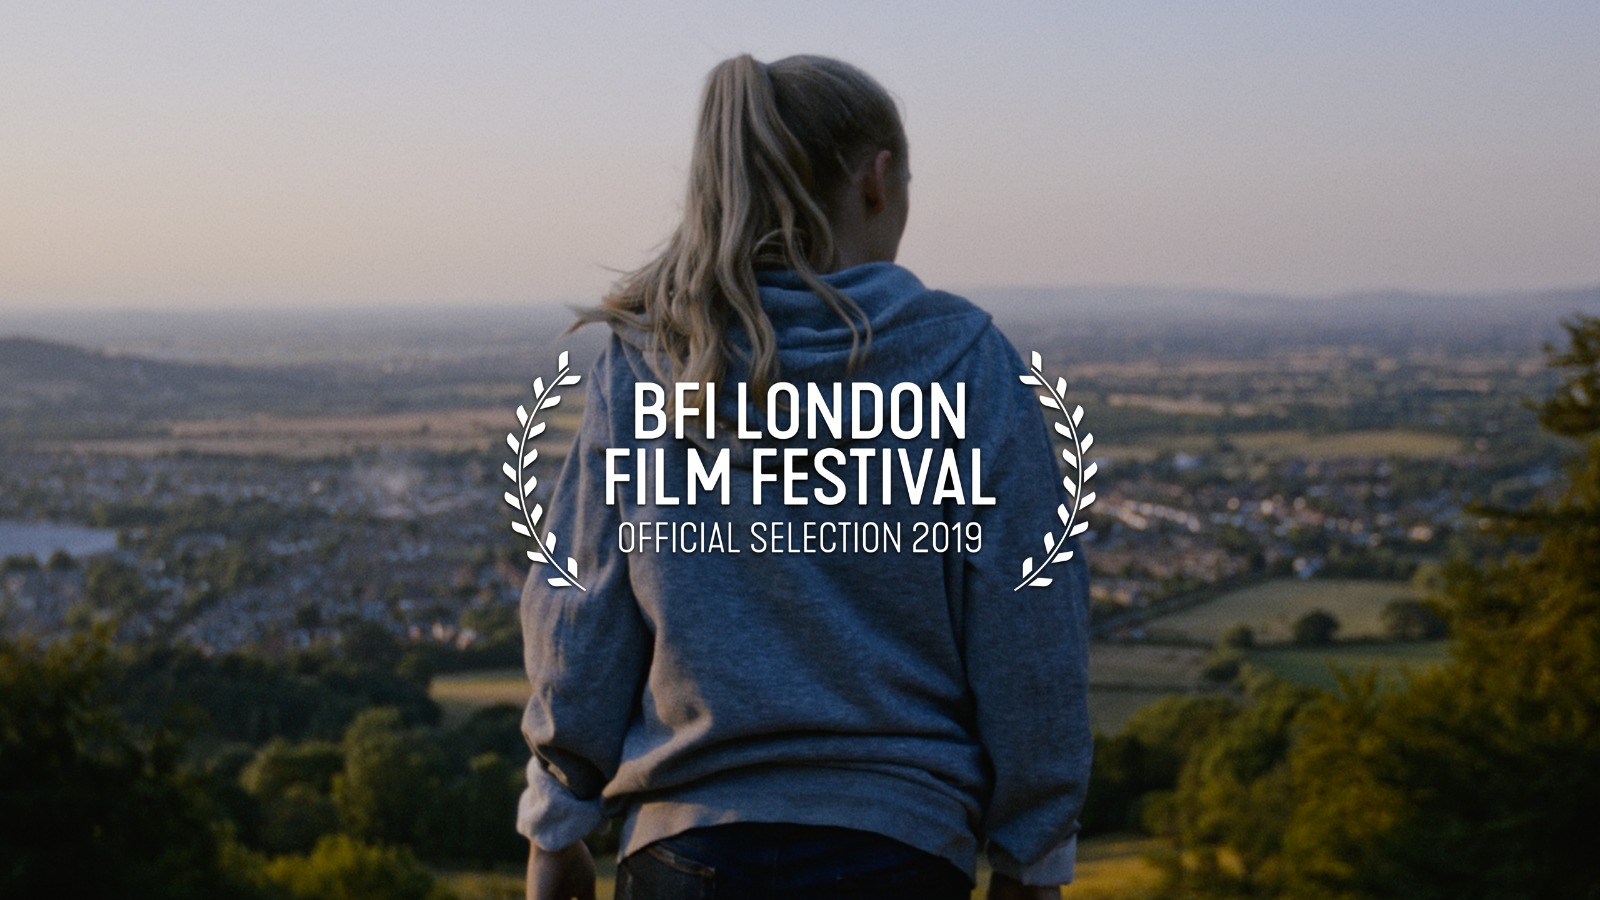 Director Chris Thomas' 'Let's Roll' Official Selection BFI Film Festival